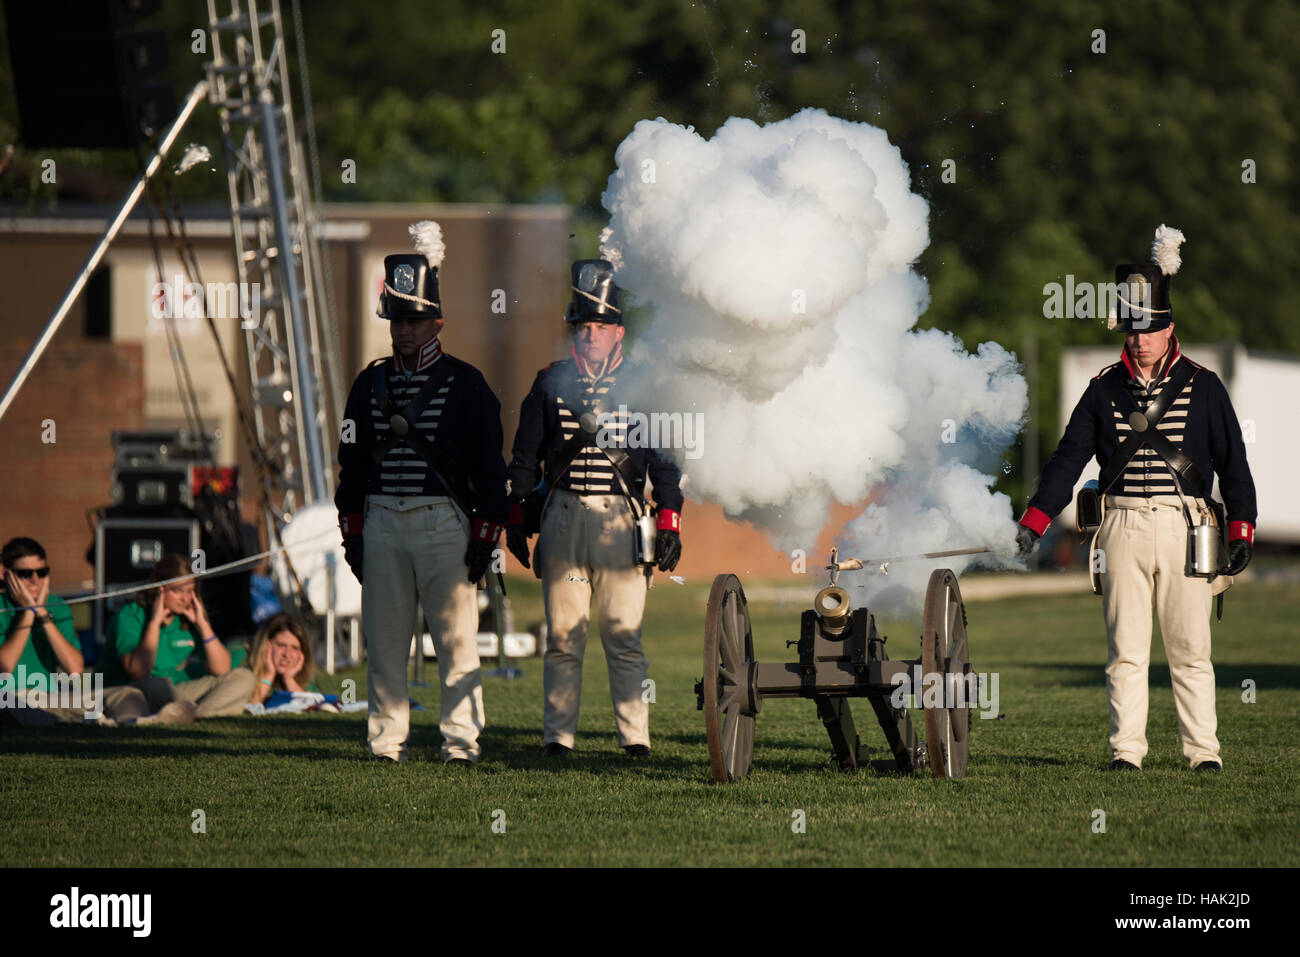 The U.S. Army's Twilight Tattoo is held on Tuesday evenings in the summer at Joint Base Myer-Henderson Hall - Stock Image